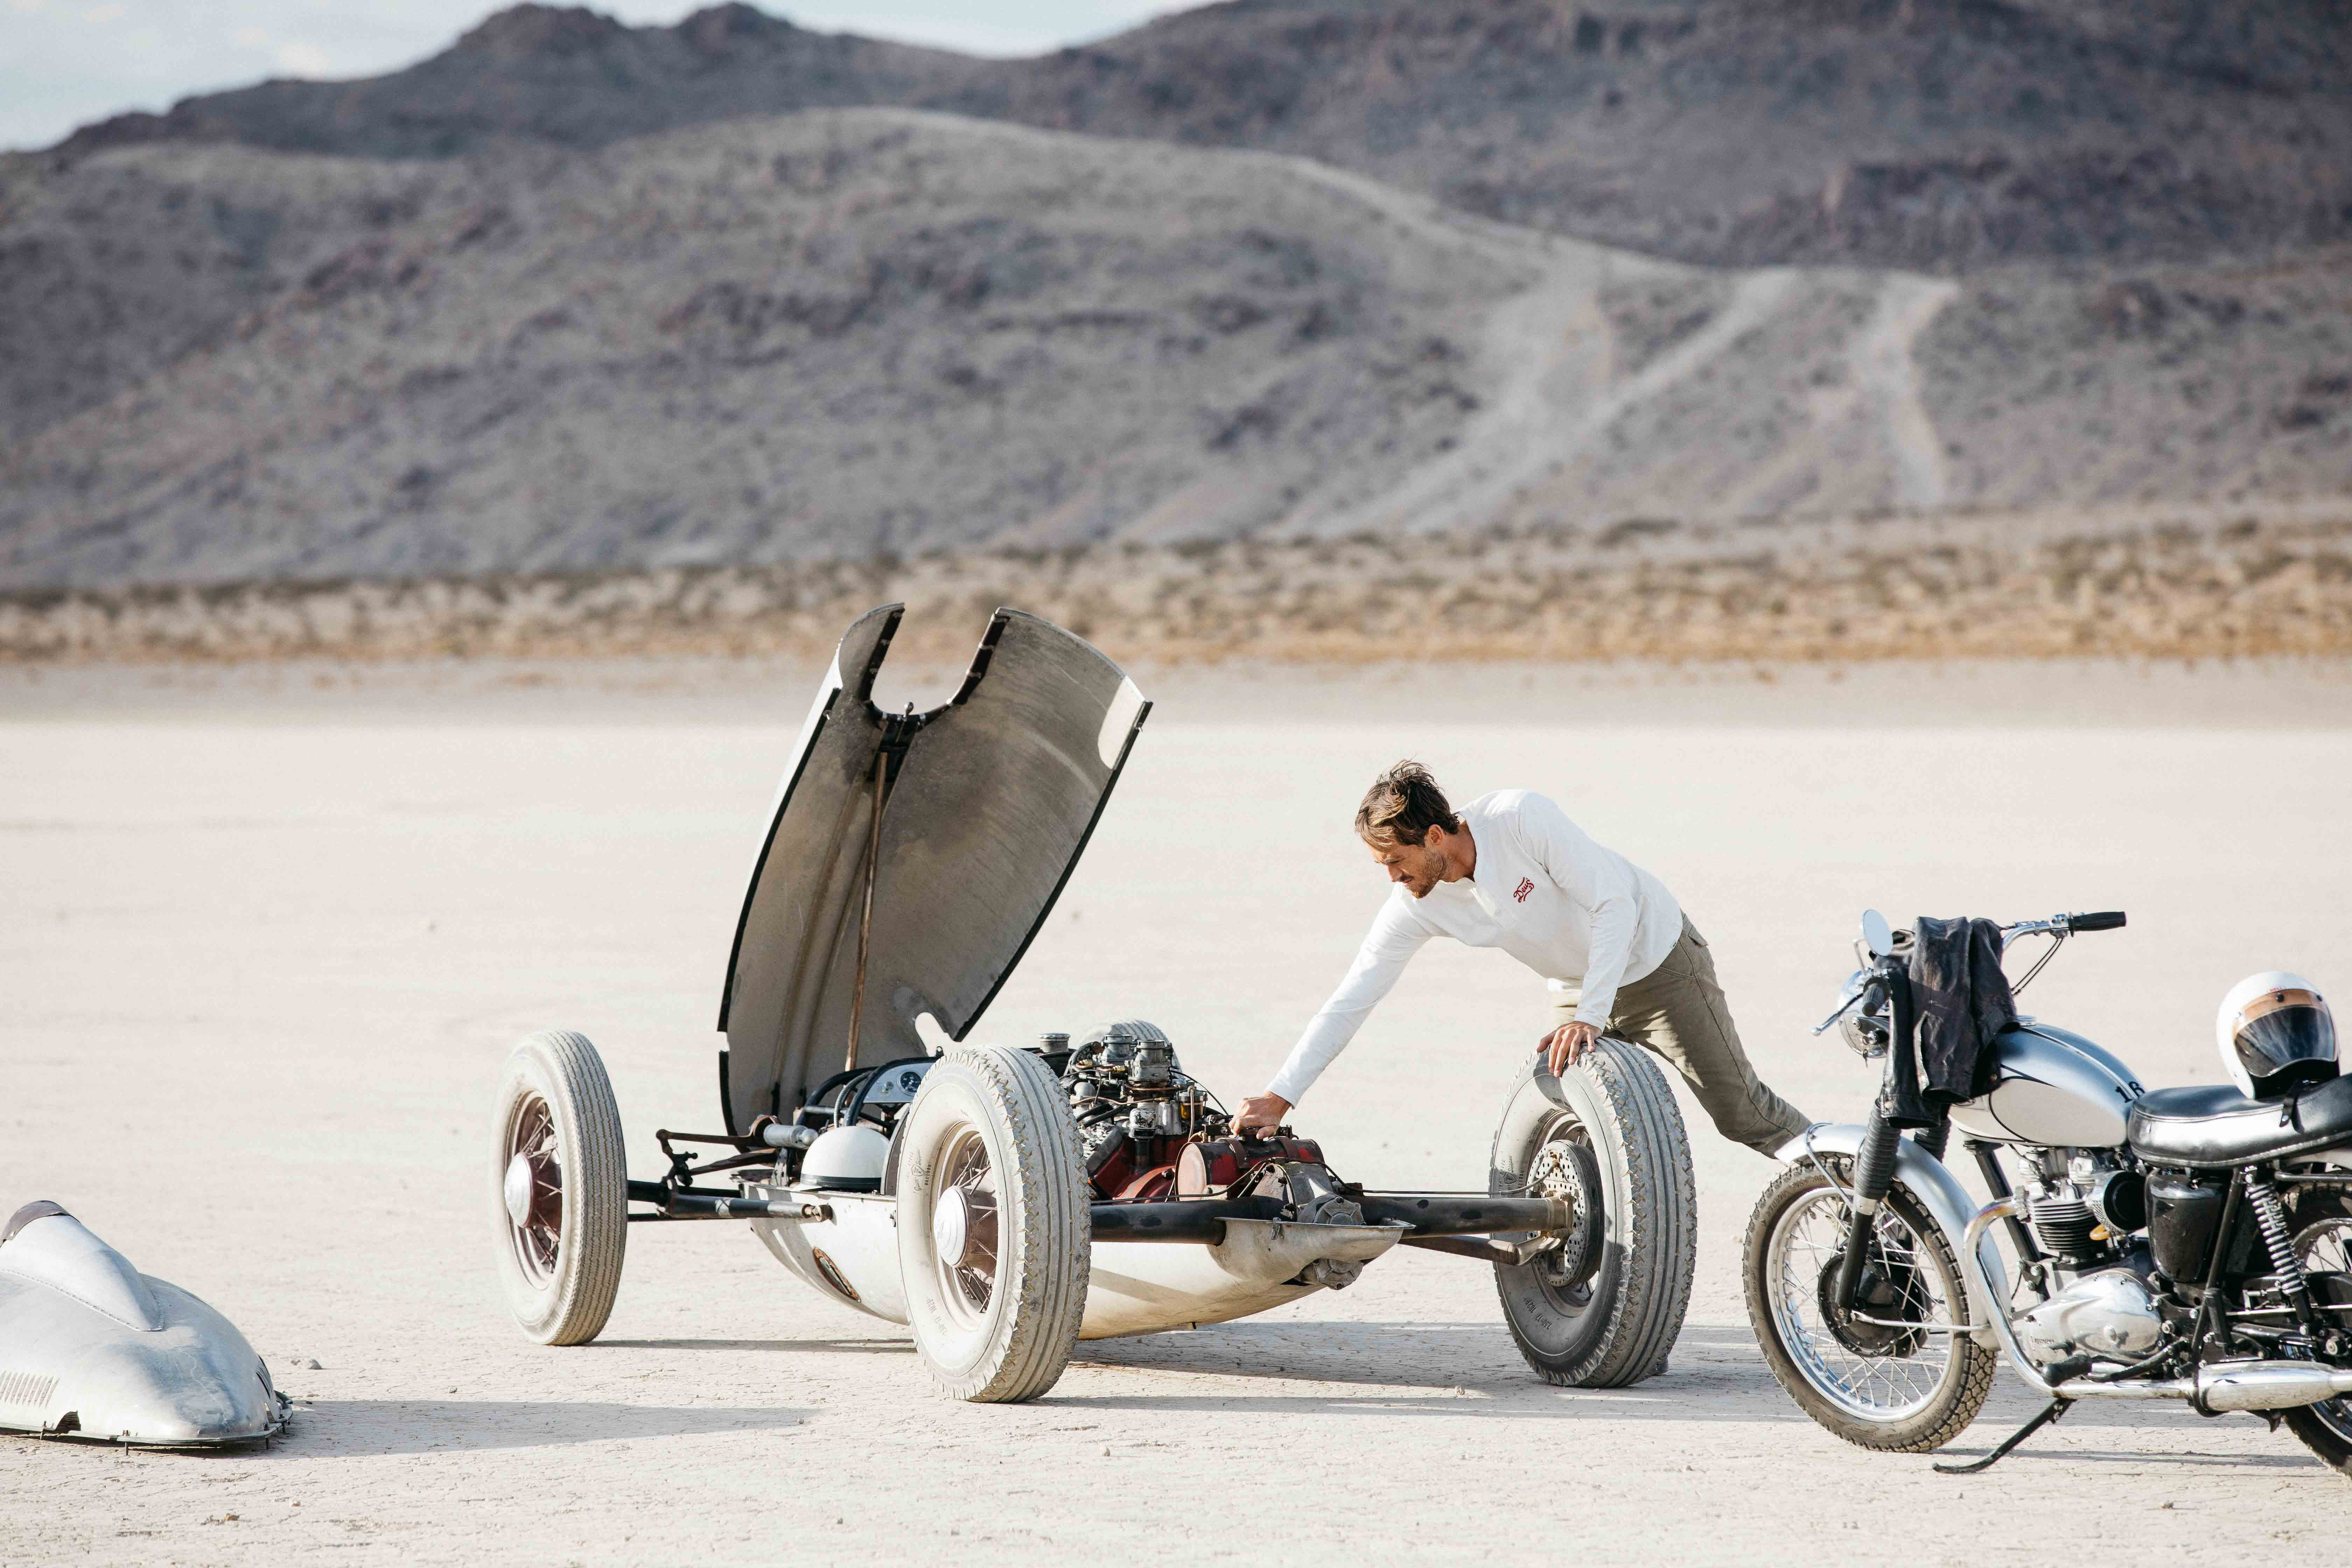 You've been doing automotive work for a very long time. How did you team up with Deus to make your last film, 'Extremity'?